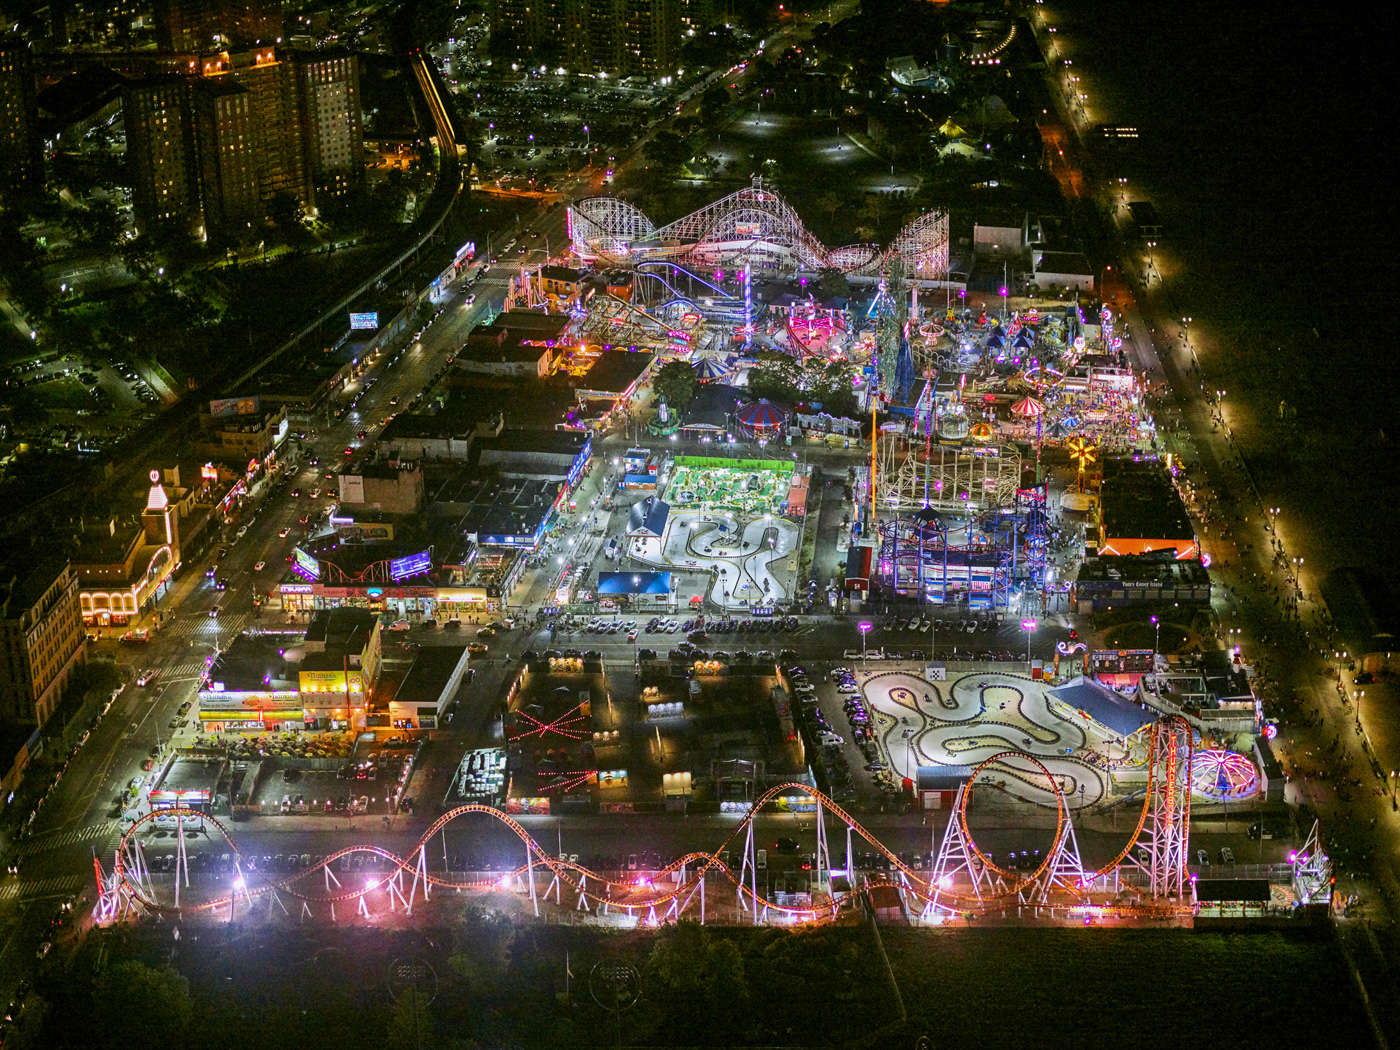 Coney Island Overview